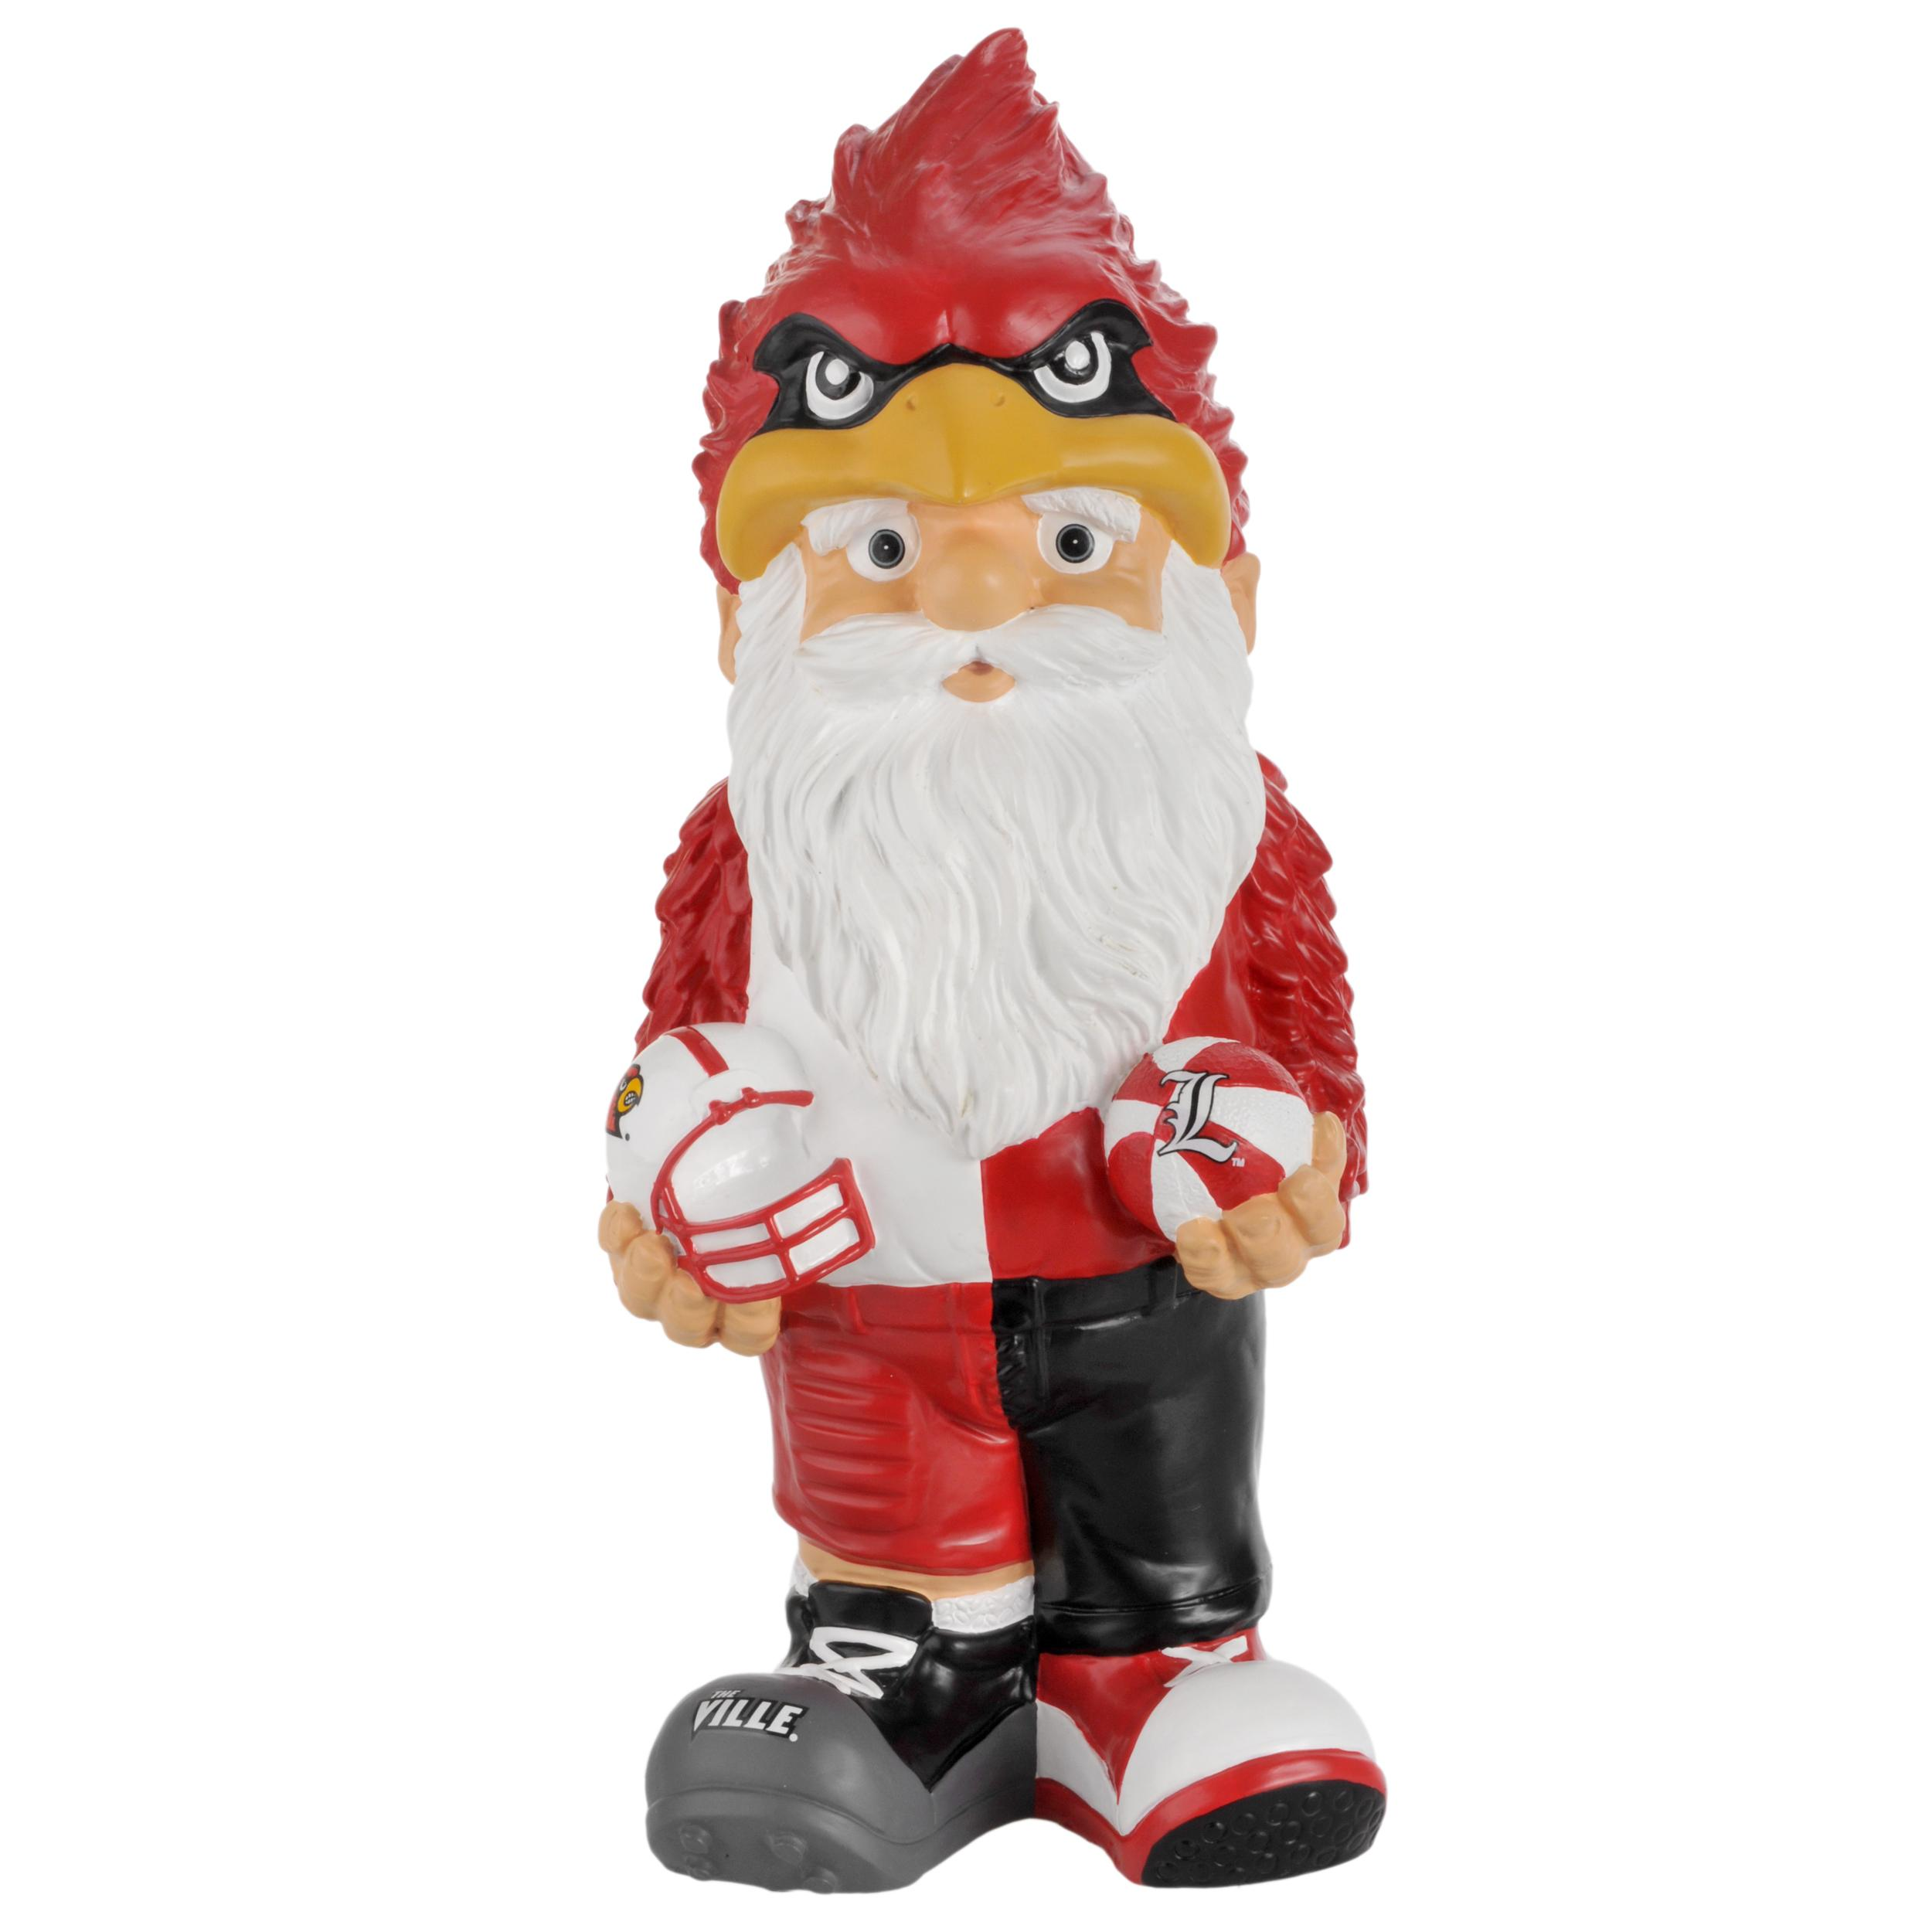 Louisville Cardinals 11-inch Thematic Garden Gnome - Thumbnail 1